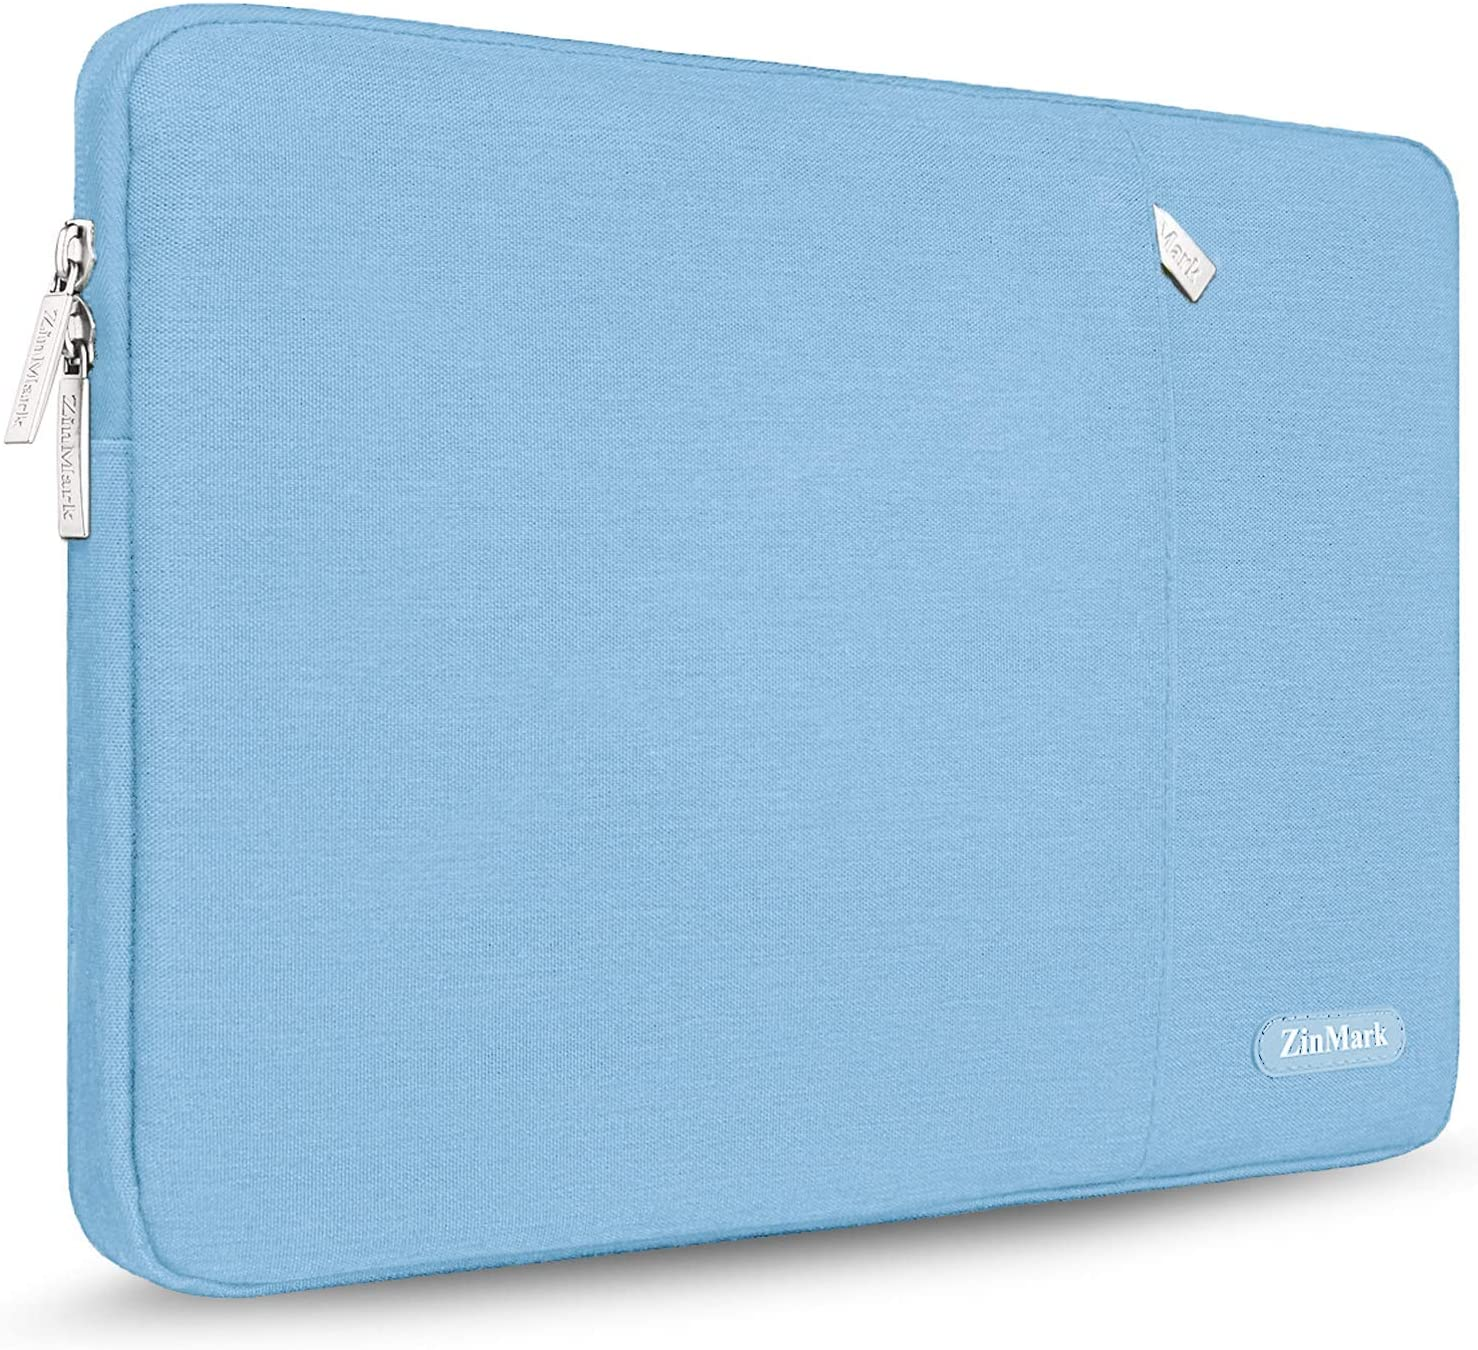 ZinMark Laptop Sleeve 13 Inch Compatible 2019 2018 MacBook Air 13 Inch Retina A1932, 13 Inch MacBook Pro A2159 A1989 A1706 A1708 | XPS 13, Water-Resistant Polyester Notebook Case, Light Blue